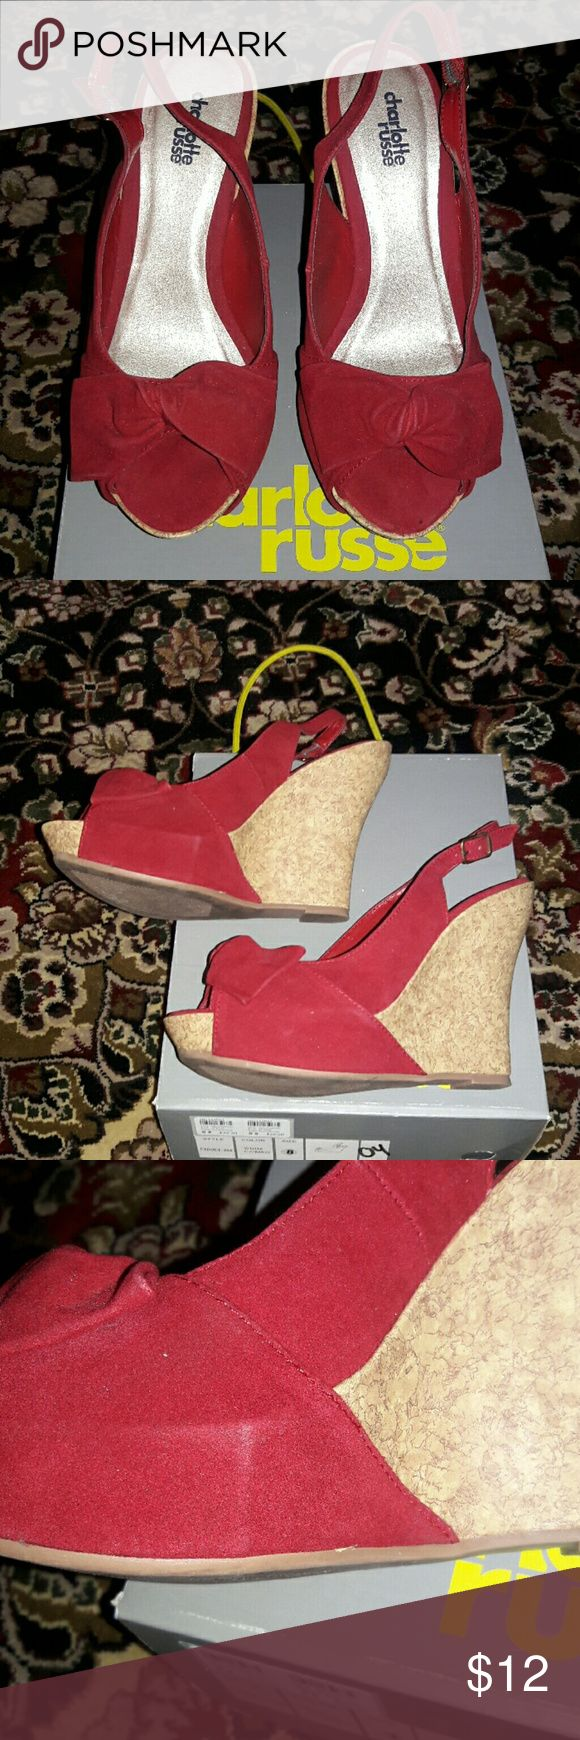 Red wedges Red seude-ish wedges with a bow on top. Cork material on back heel.  Worn just a few times.  Still lots of wear left.  Slight fabric impression on right inside shoe.  (Shown in picture) Charlotte Russe Shoes Wedges